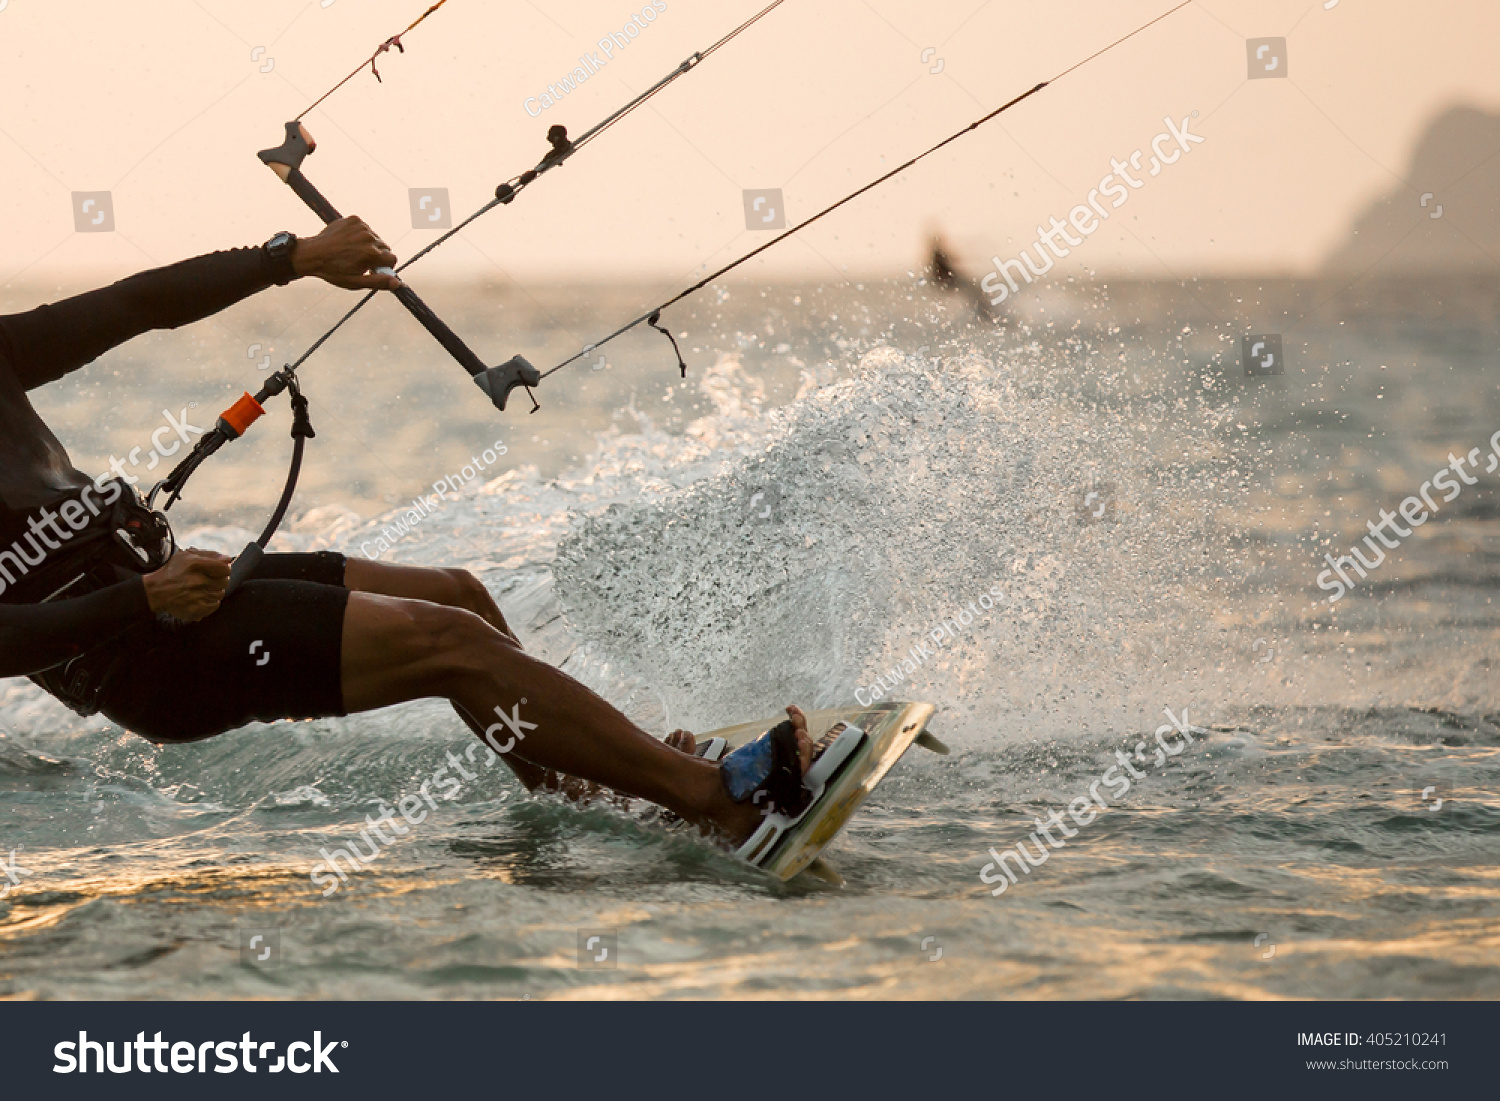 Kitesurfing Kiteboarding action photos